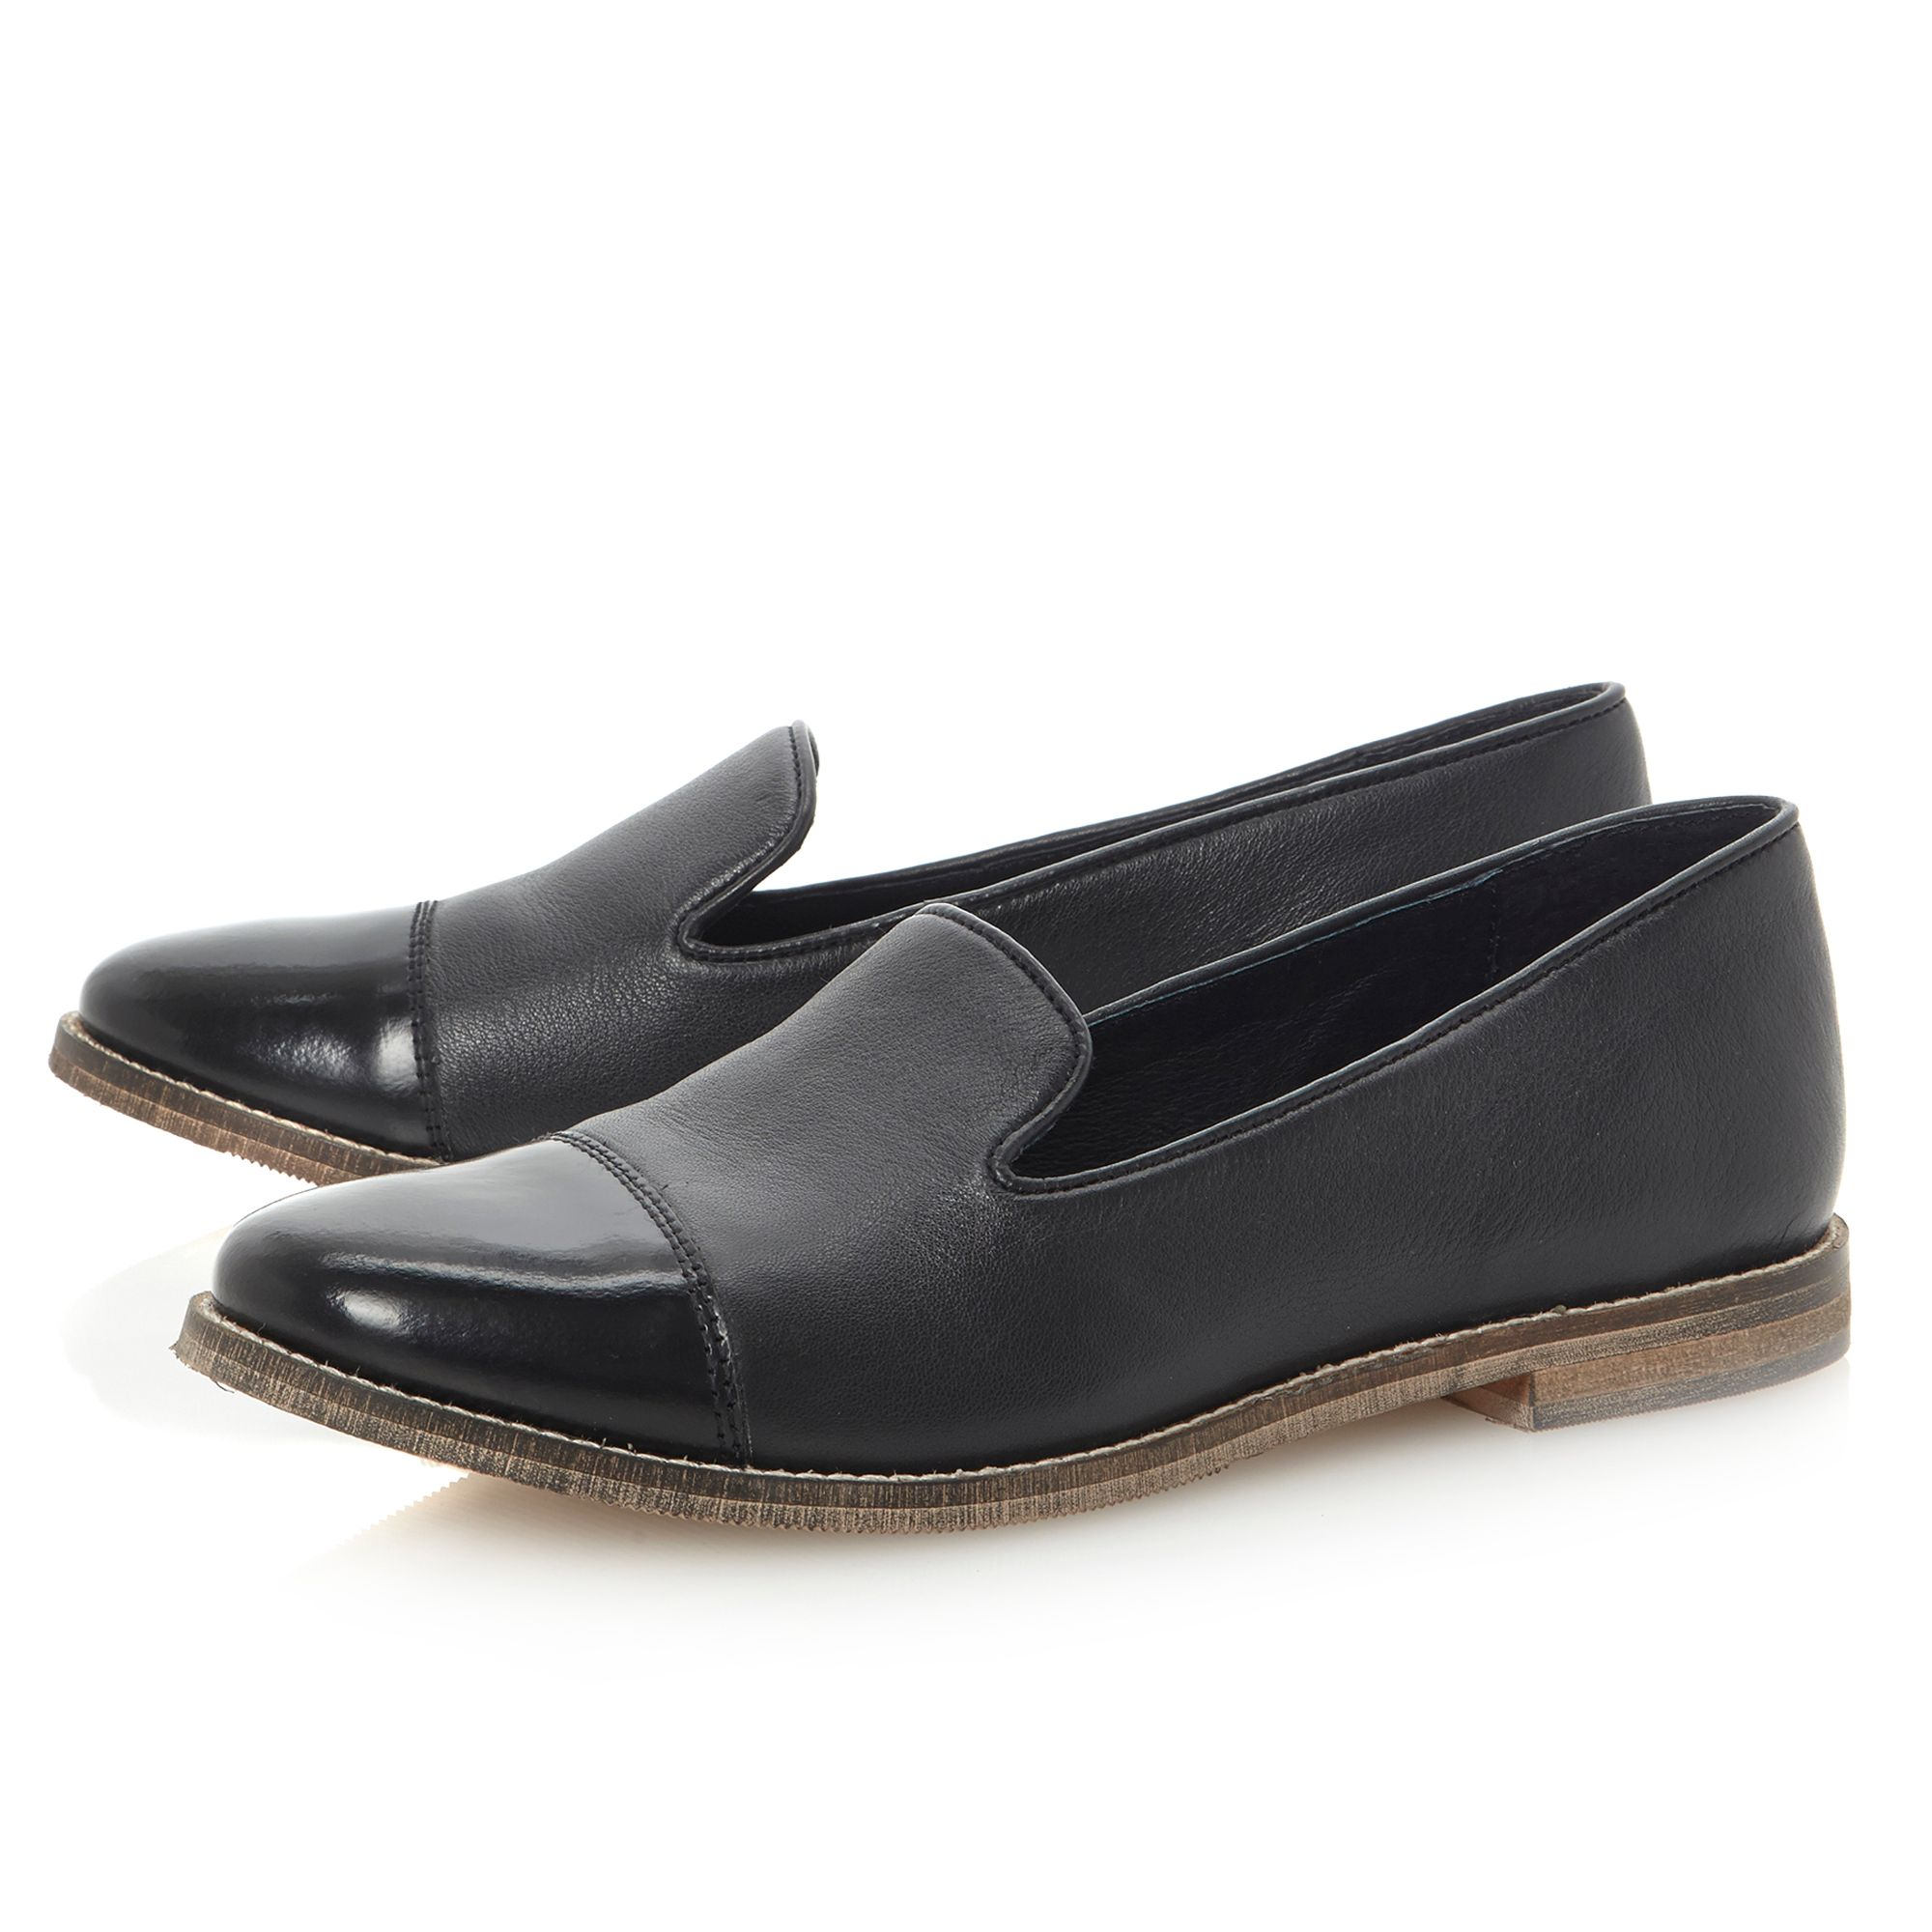 Loni leather toecaup slipper shoes